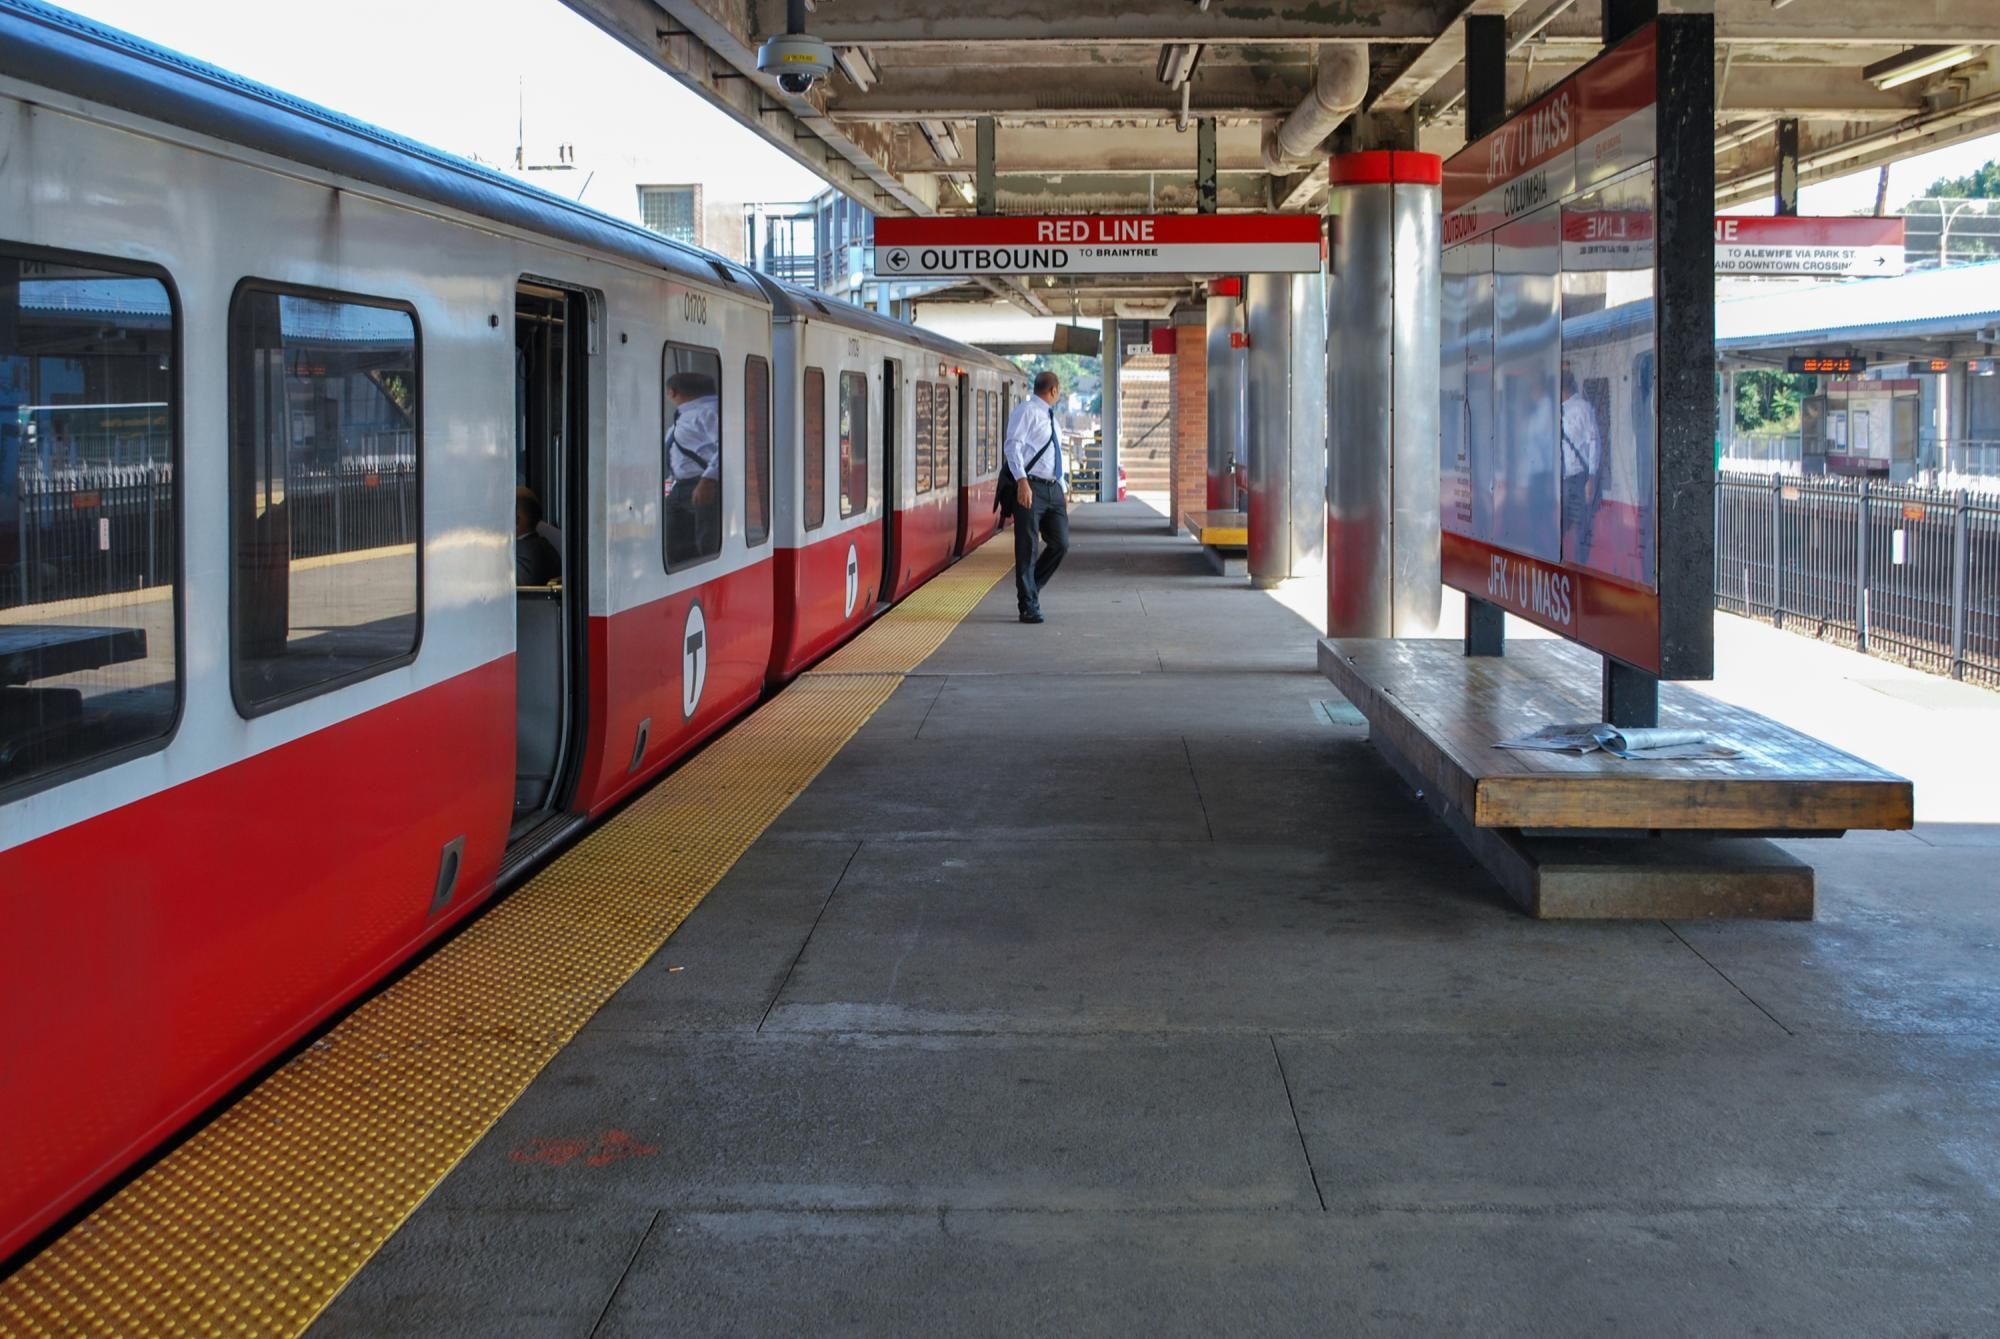 A man on the sunlit JFK/UMass platform, with a Red Line train pulled up